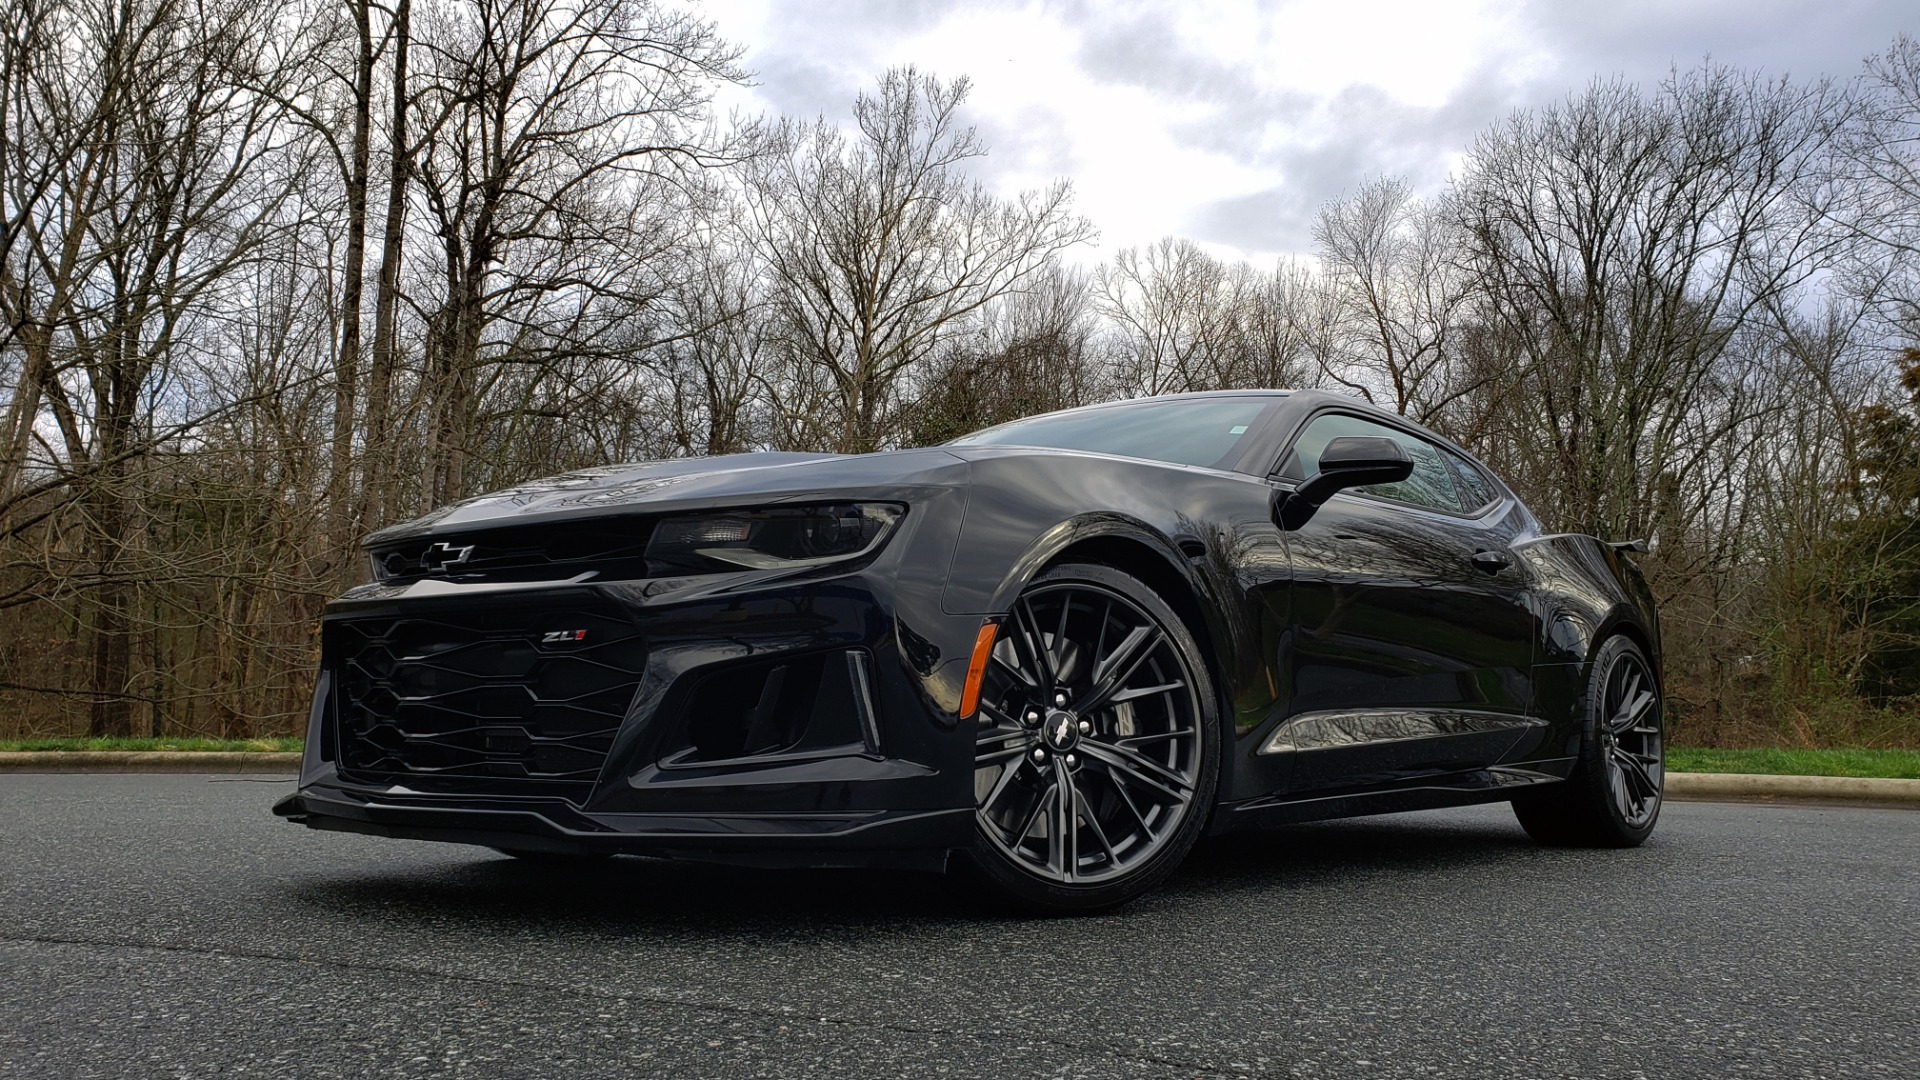 Used 2018 Chevrolet CAMARO ZL1 6.2L SUPERCHARGED V8 650 / NAV / SUNROOF / REARVIEW for sale Sold at Formula Imports in Charlotte NC 28227 2